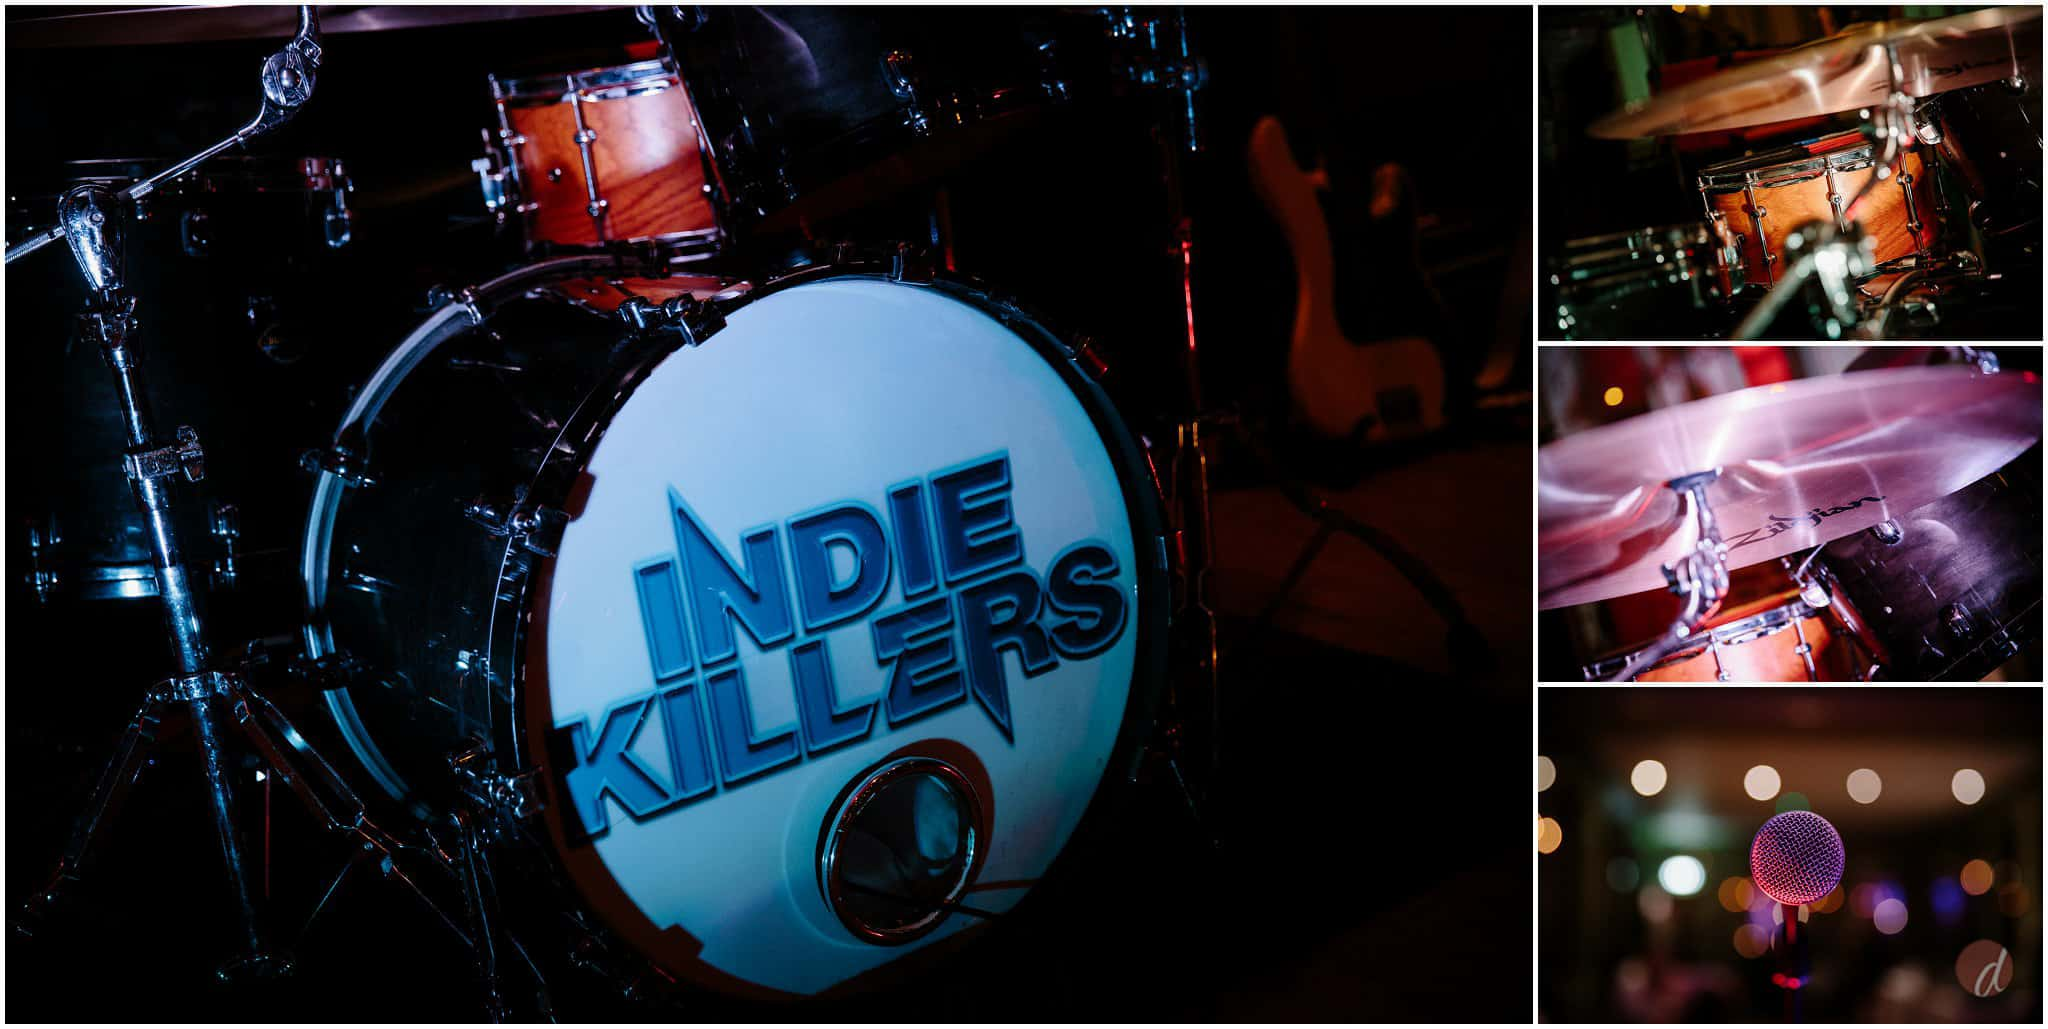 the indie killers